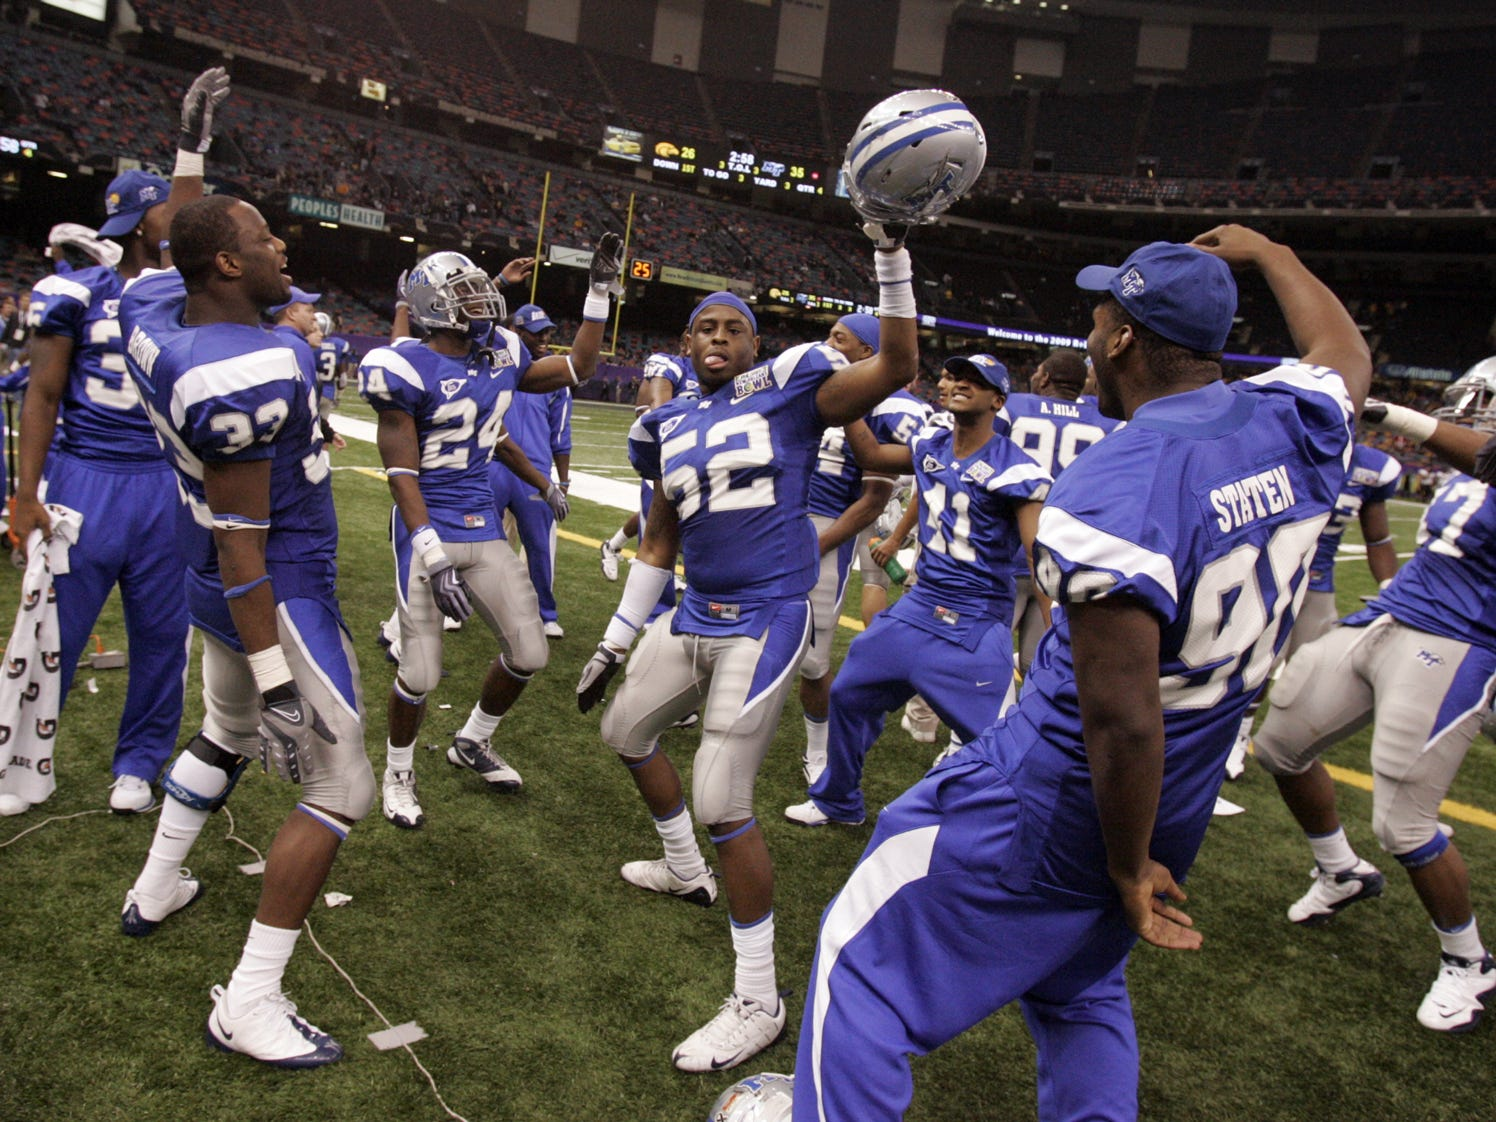 MTSU players celebrate during the fourth quarter of their win over Southern Miss in the New Orleans Bowl on Dec. 20, 2009.